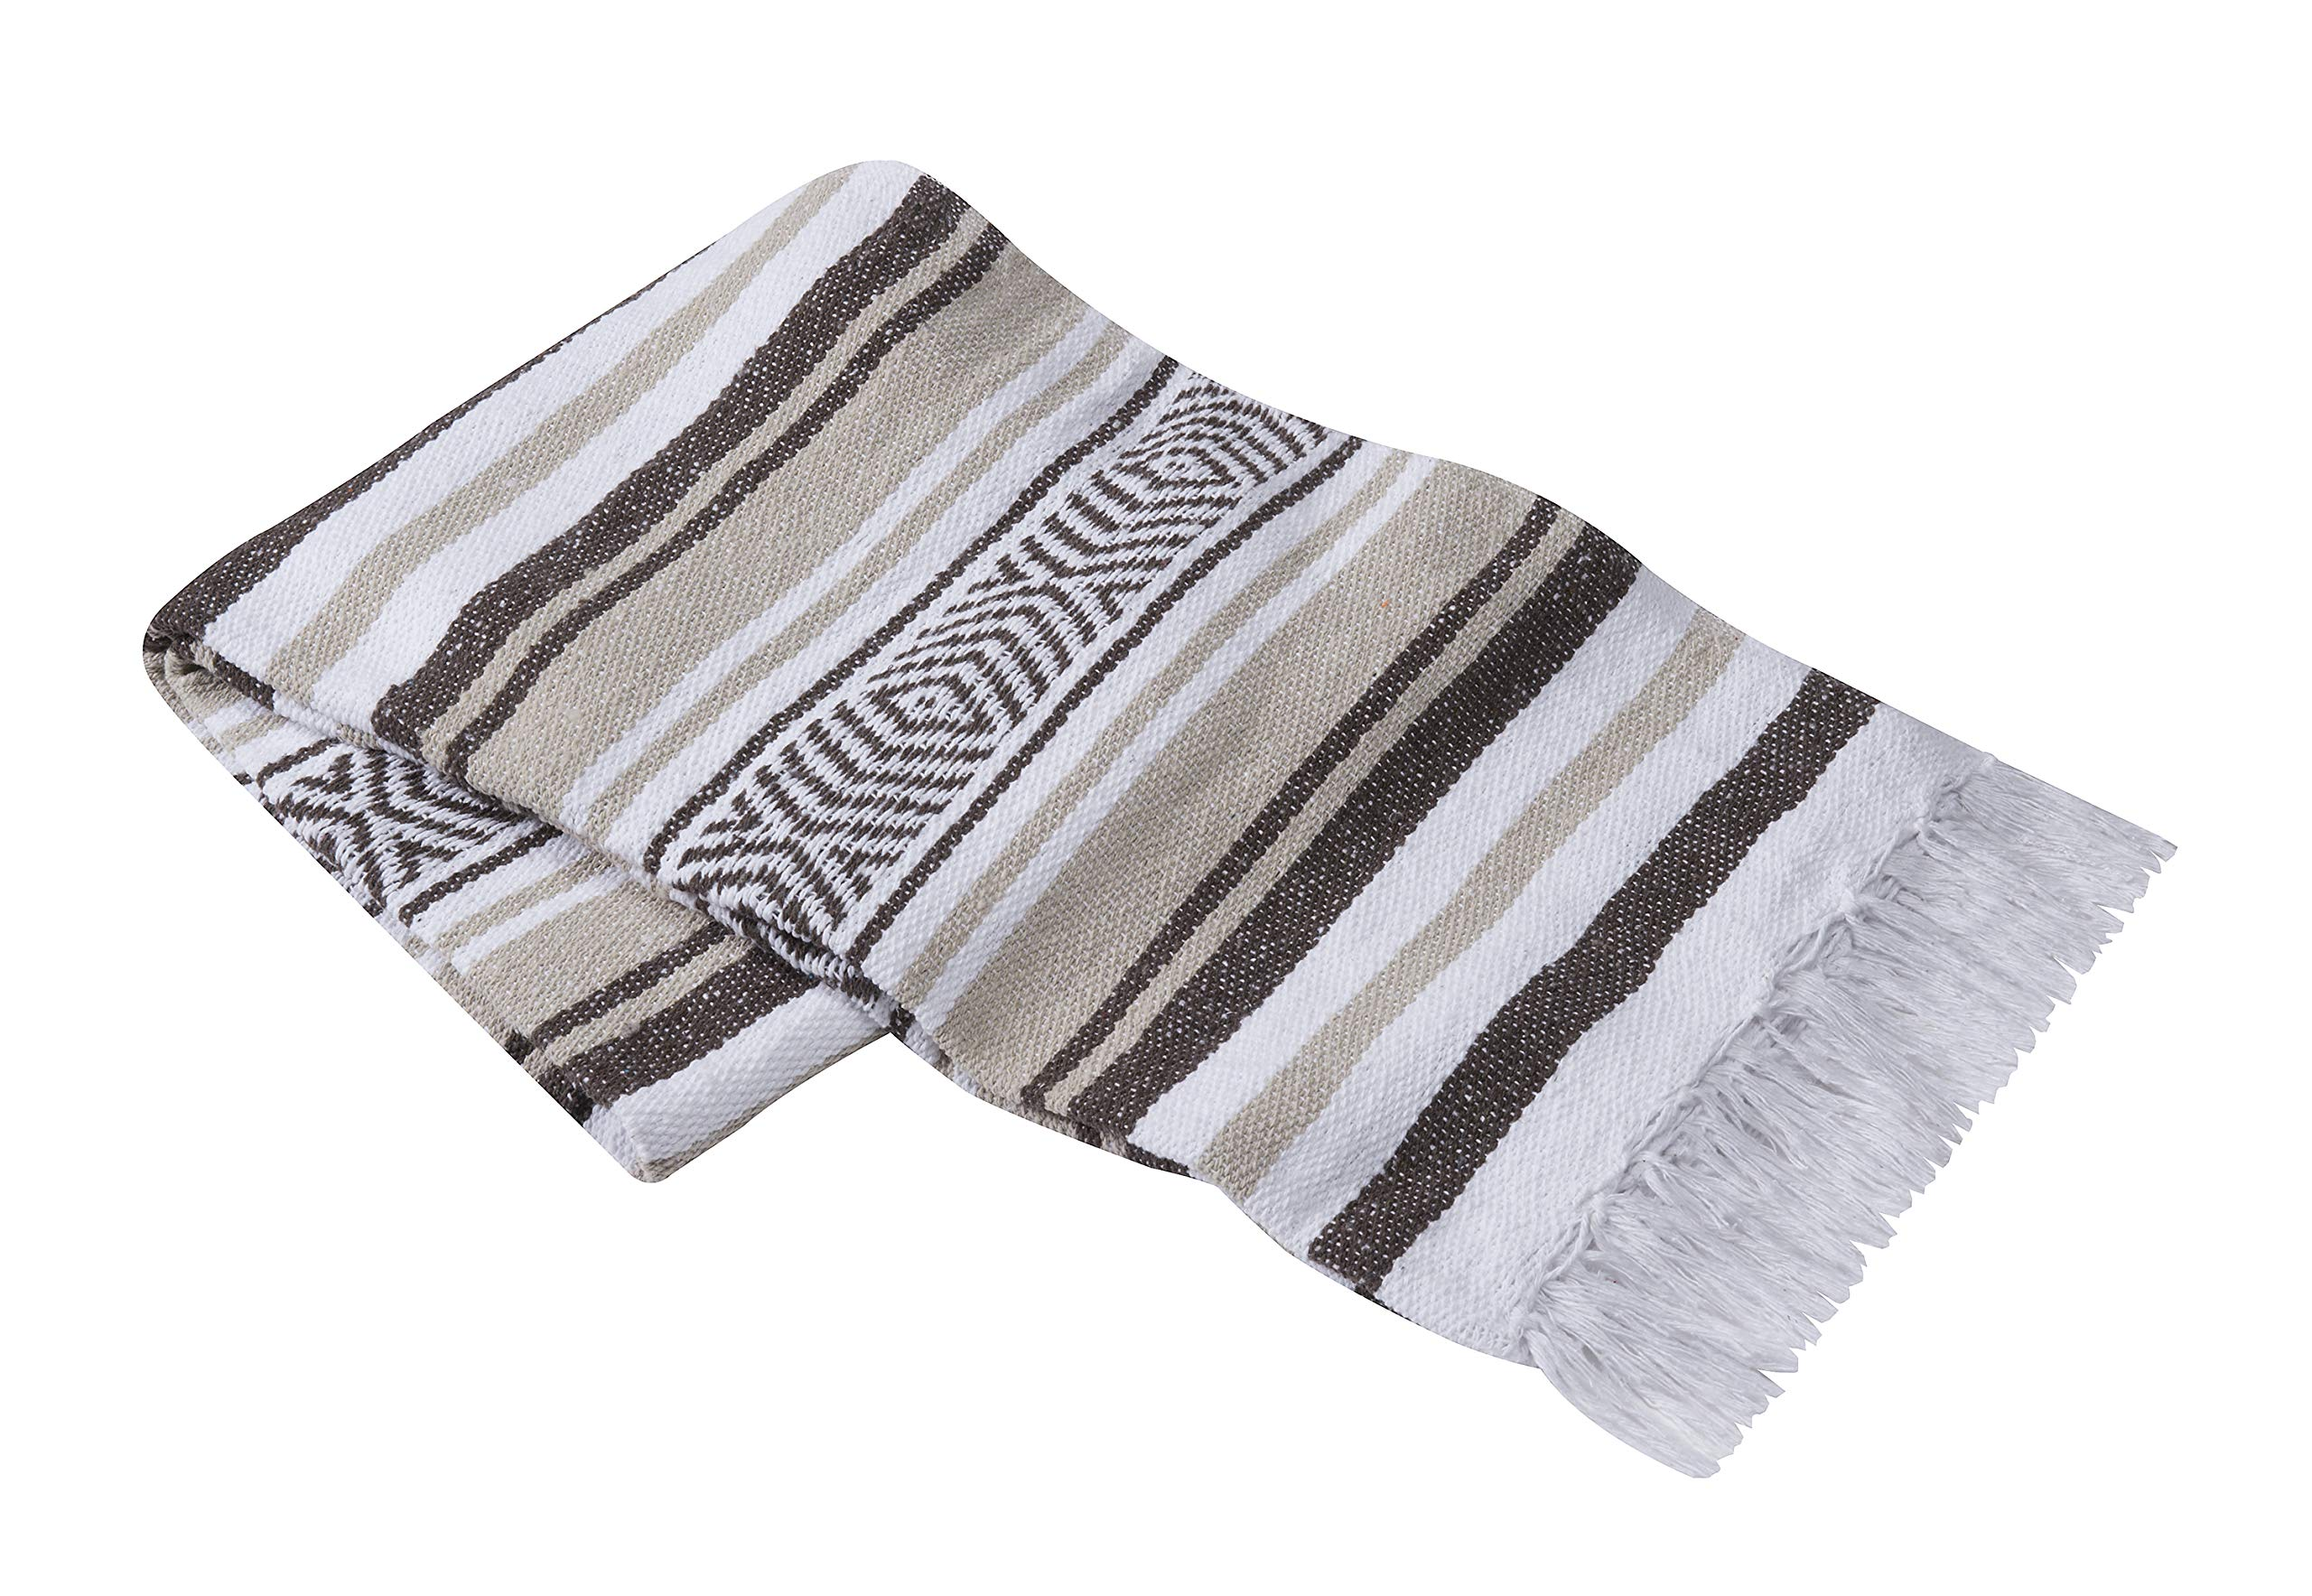 Vera Cruz - Mexican Yoga Blankets - 10-Pack - Wholesale Pricing - Made in Mexico (Dark Brown/Tan/White)